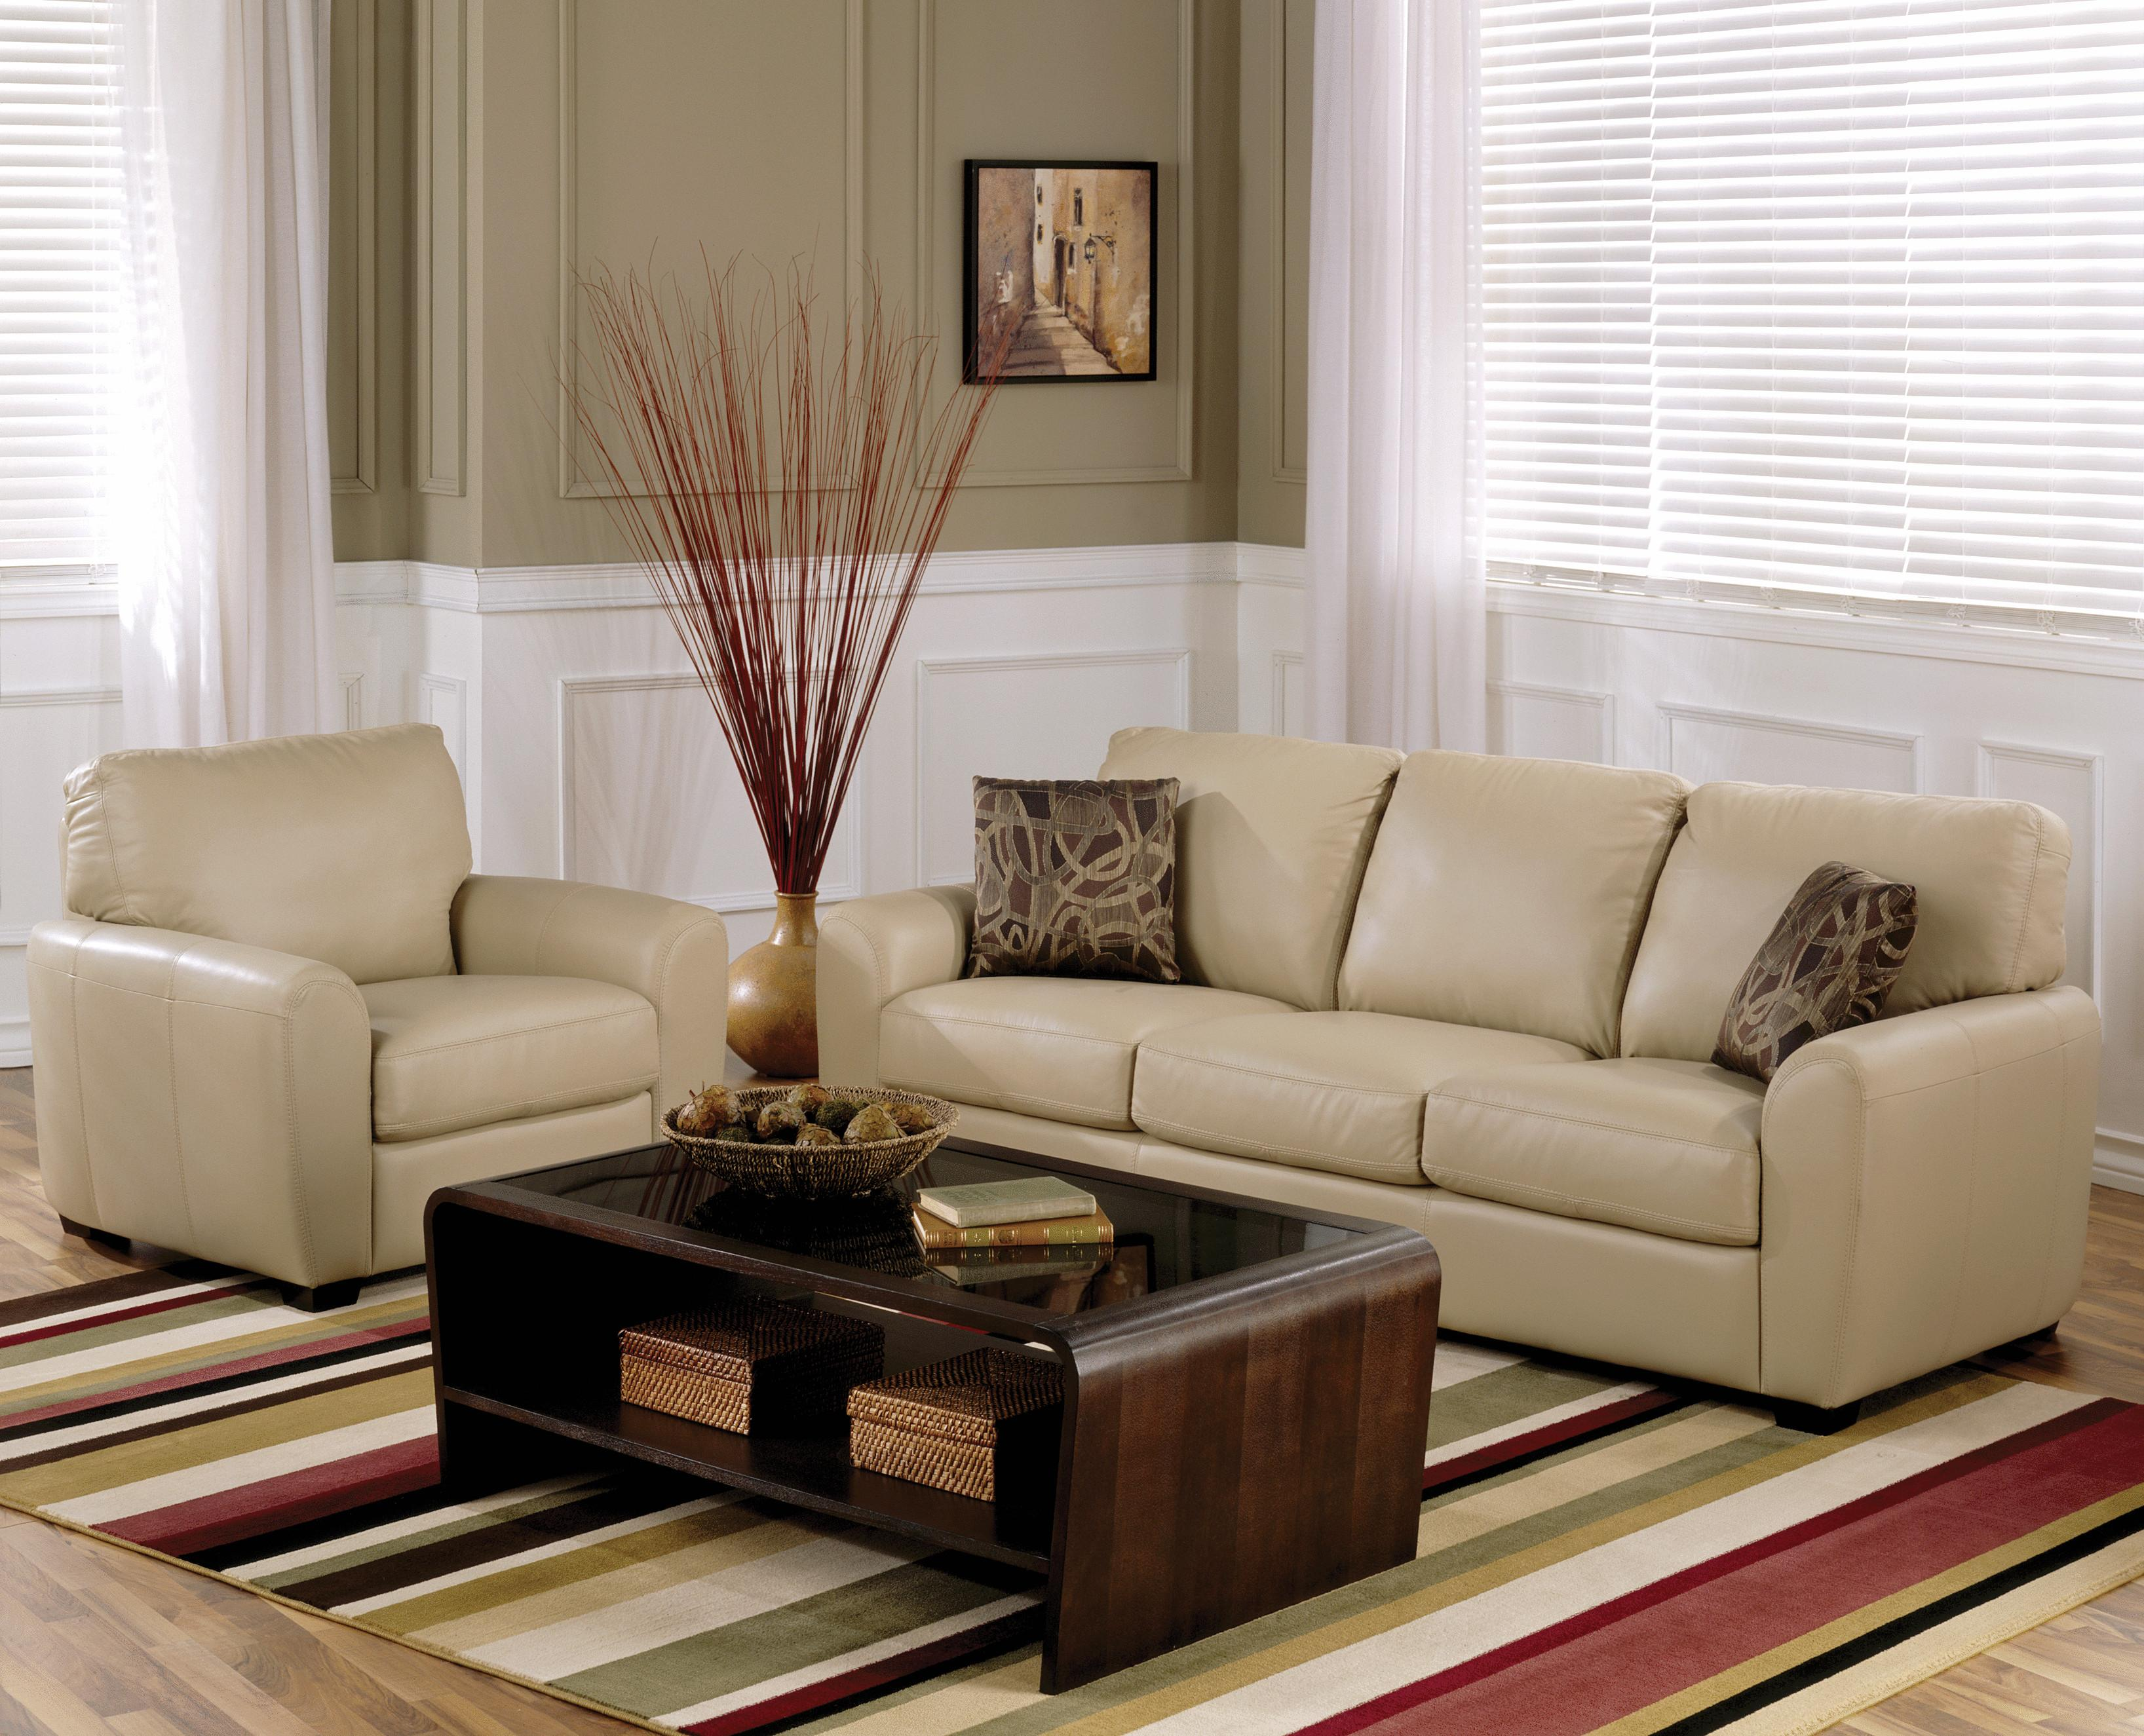 Palliser Connecticut Contemporary Sectional Sofa with RHF Chaise ...